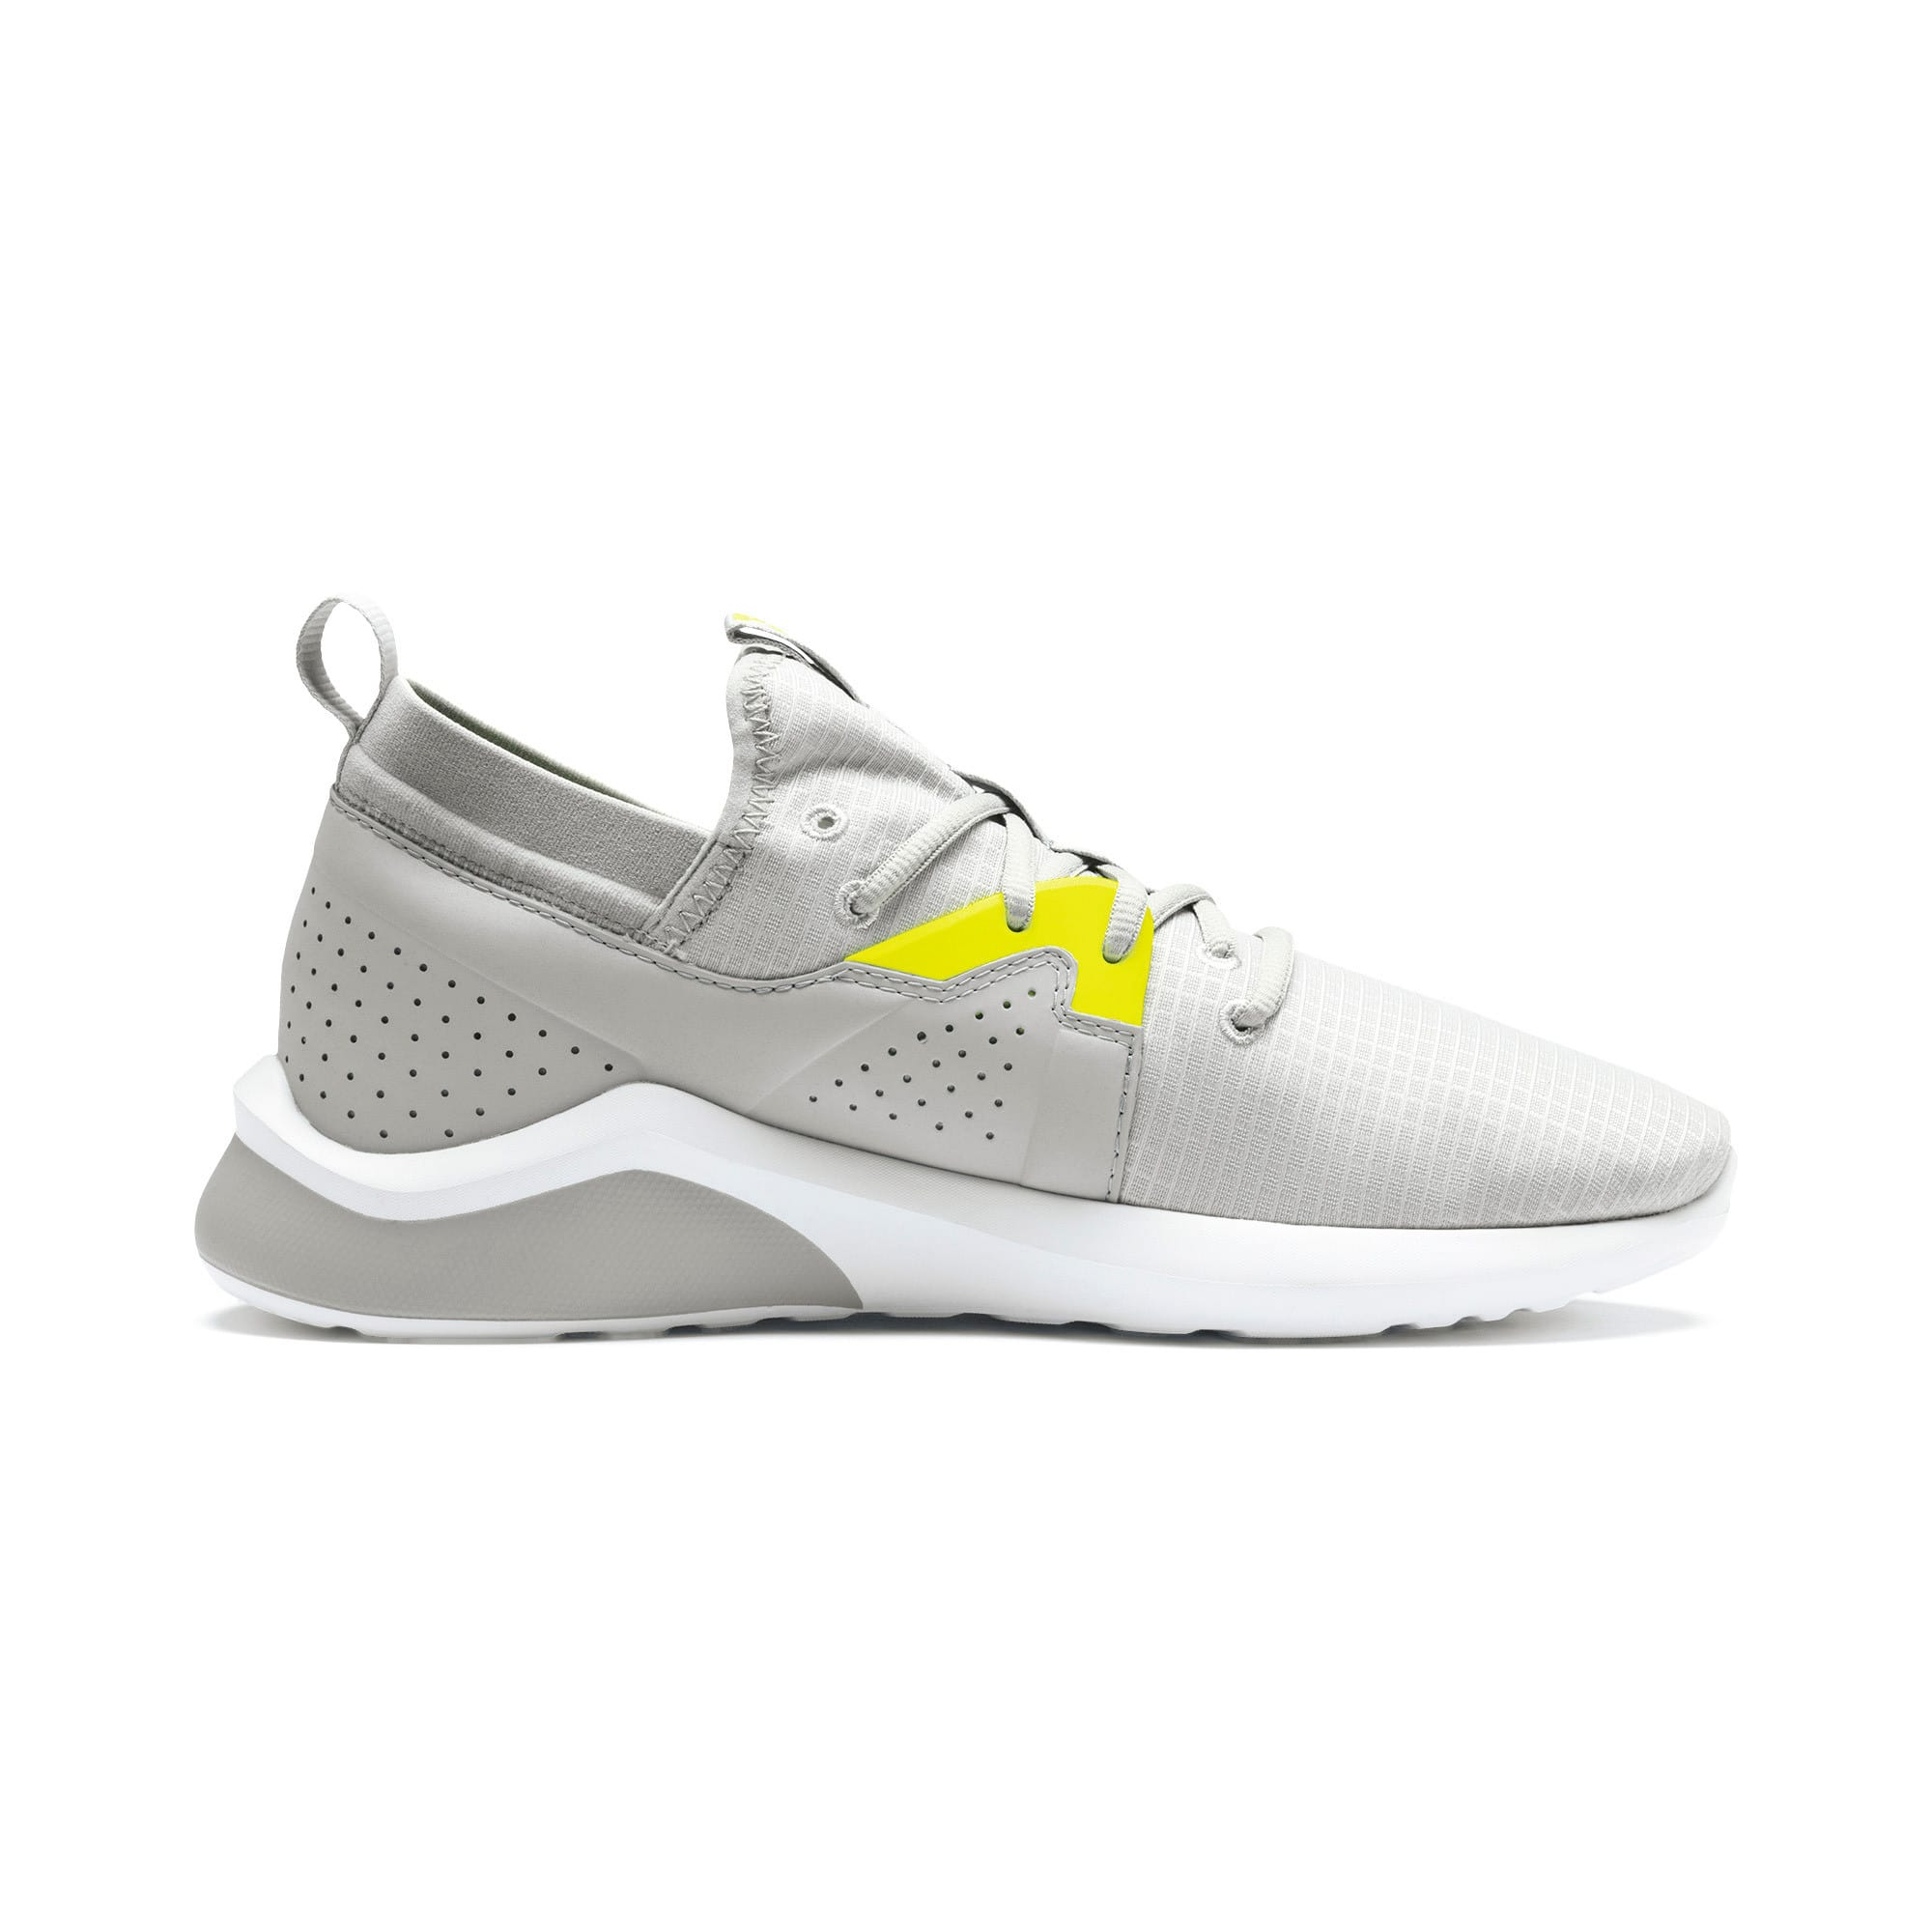 Thumbnail 6 of Emergence Lights Men's Training Shoes, High Rise-Yellow Alert, medium